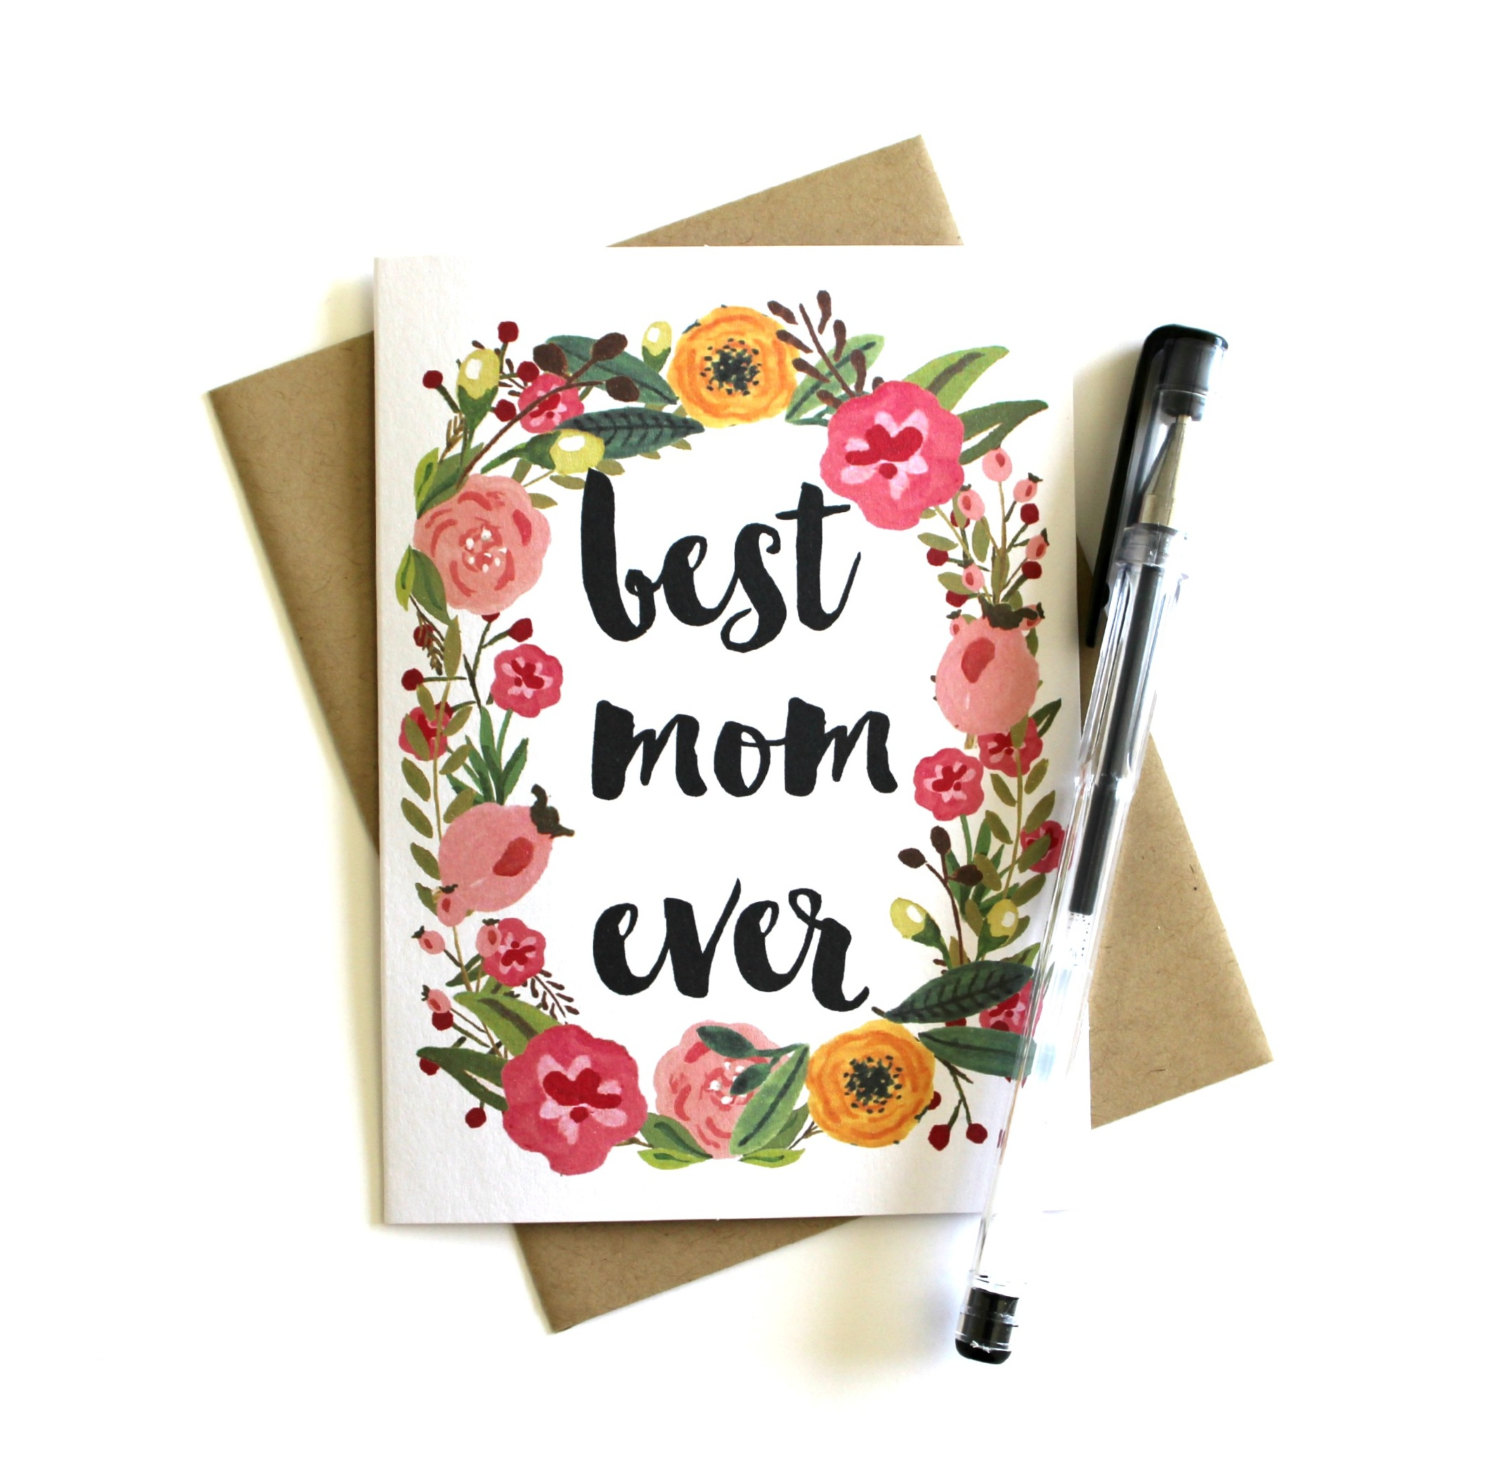 15 Mother S Day Cards On Etsy That Are Unique And Heartfelt Because Mom Deserves Better Than A